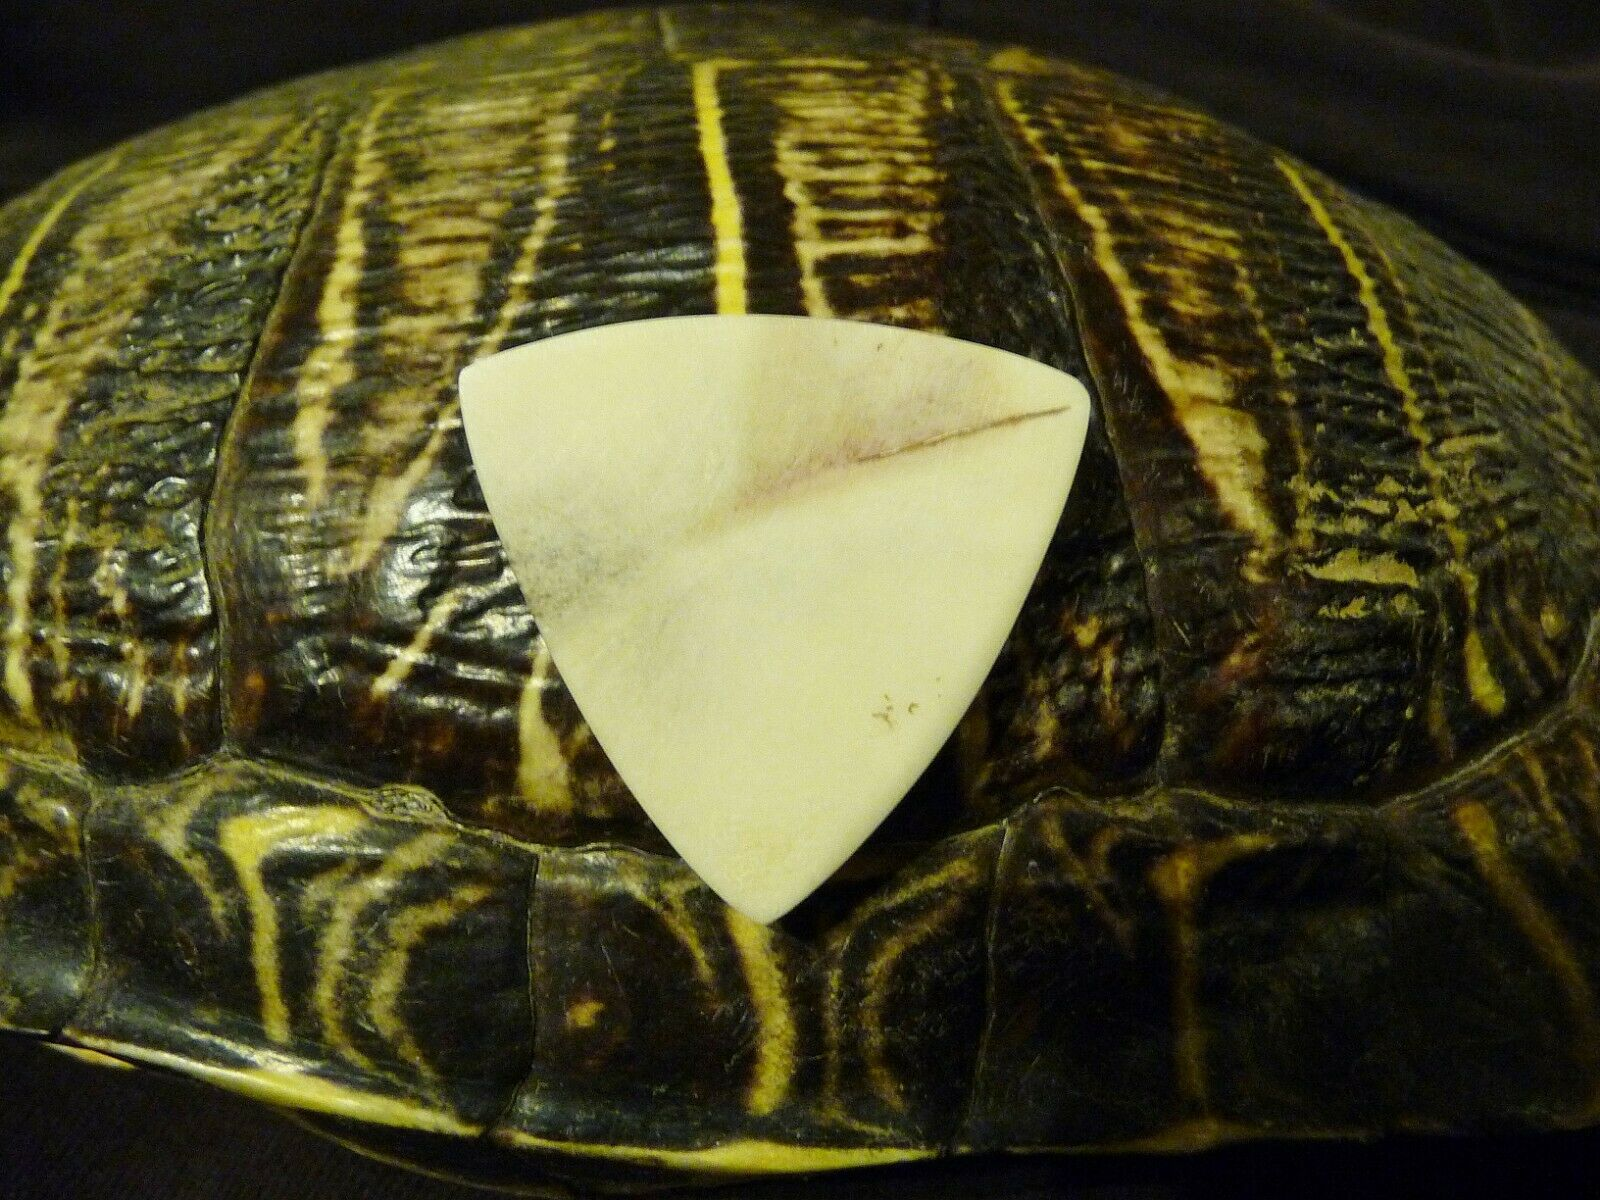 SLY rot'S  TURTLE SHELL BlauGRASS TRI-CORNER ACOUSTIC GUITAR PICK 100% LEGAL